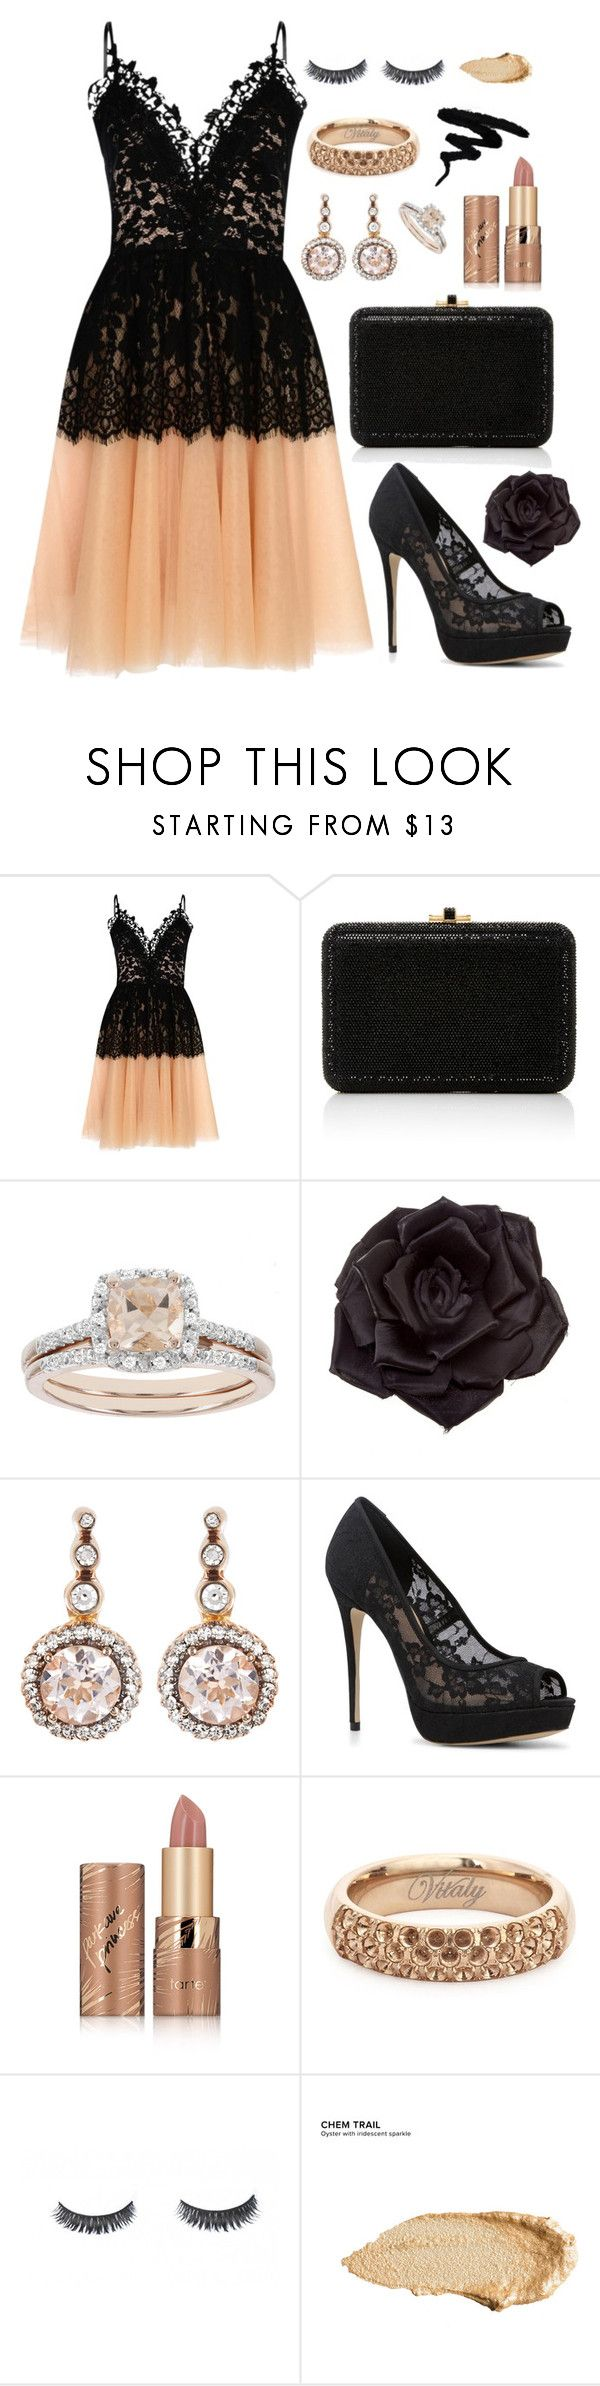 """""""Prom Night 😇"""" by tegan-nottle ❤ liked on Polyvore featuring True Decadence, Judith Leiber, Modern Bride, Johnny Loves Rosie, Selim Mouzannar, ALDO, tarte, Luxie and Urban Decay"""